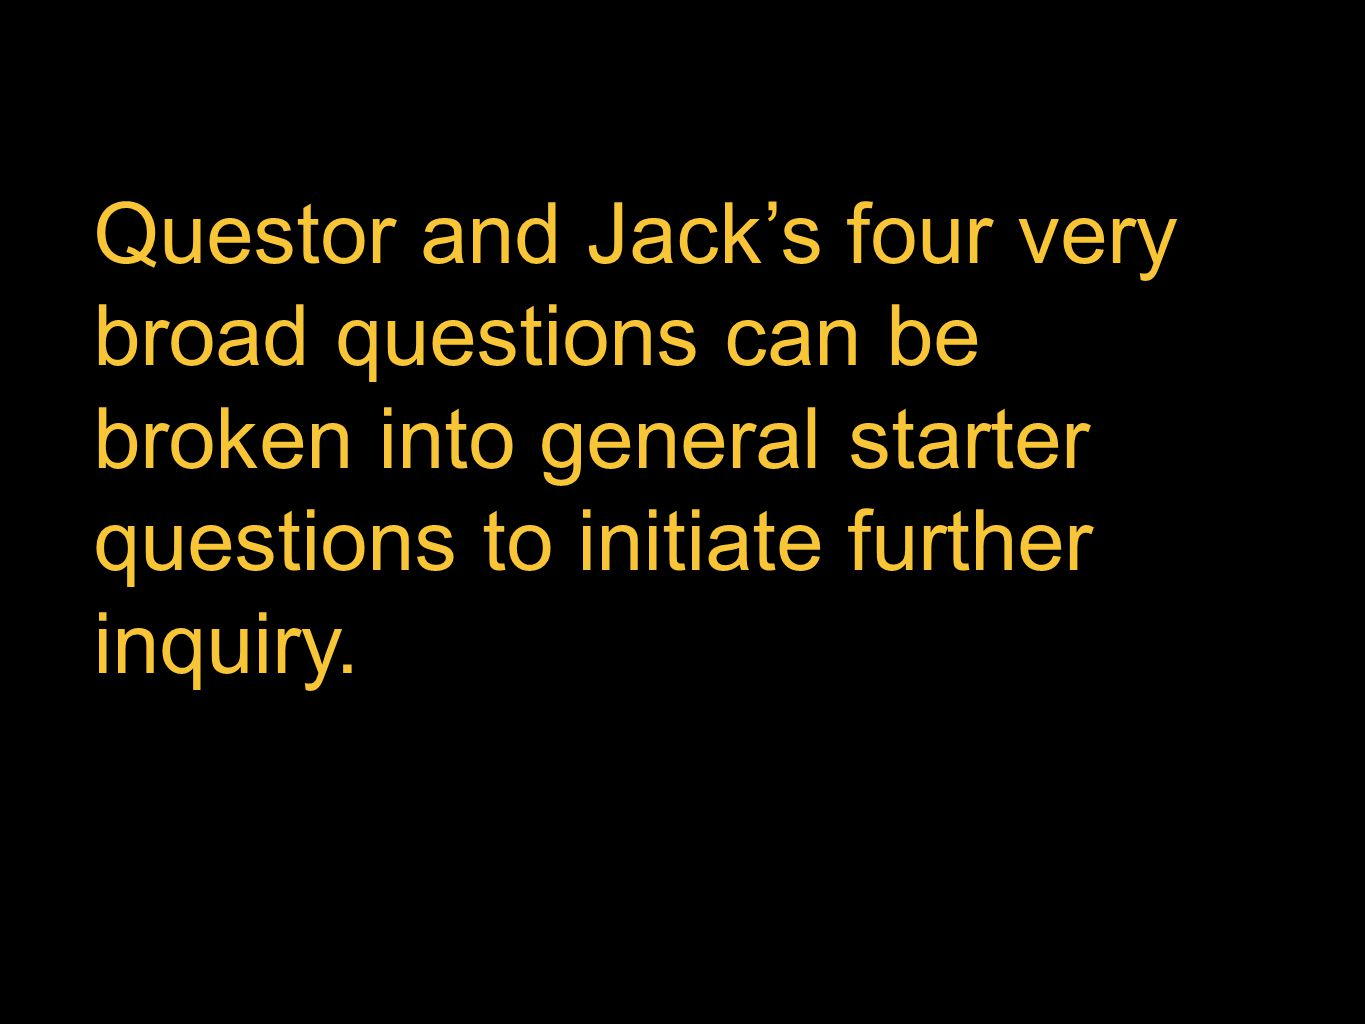 Questor and Jack's four very broad questions can be broken into general starter questions to initiate further inquiry.